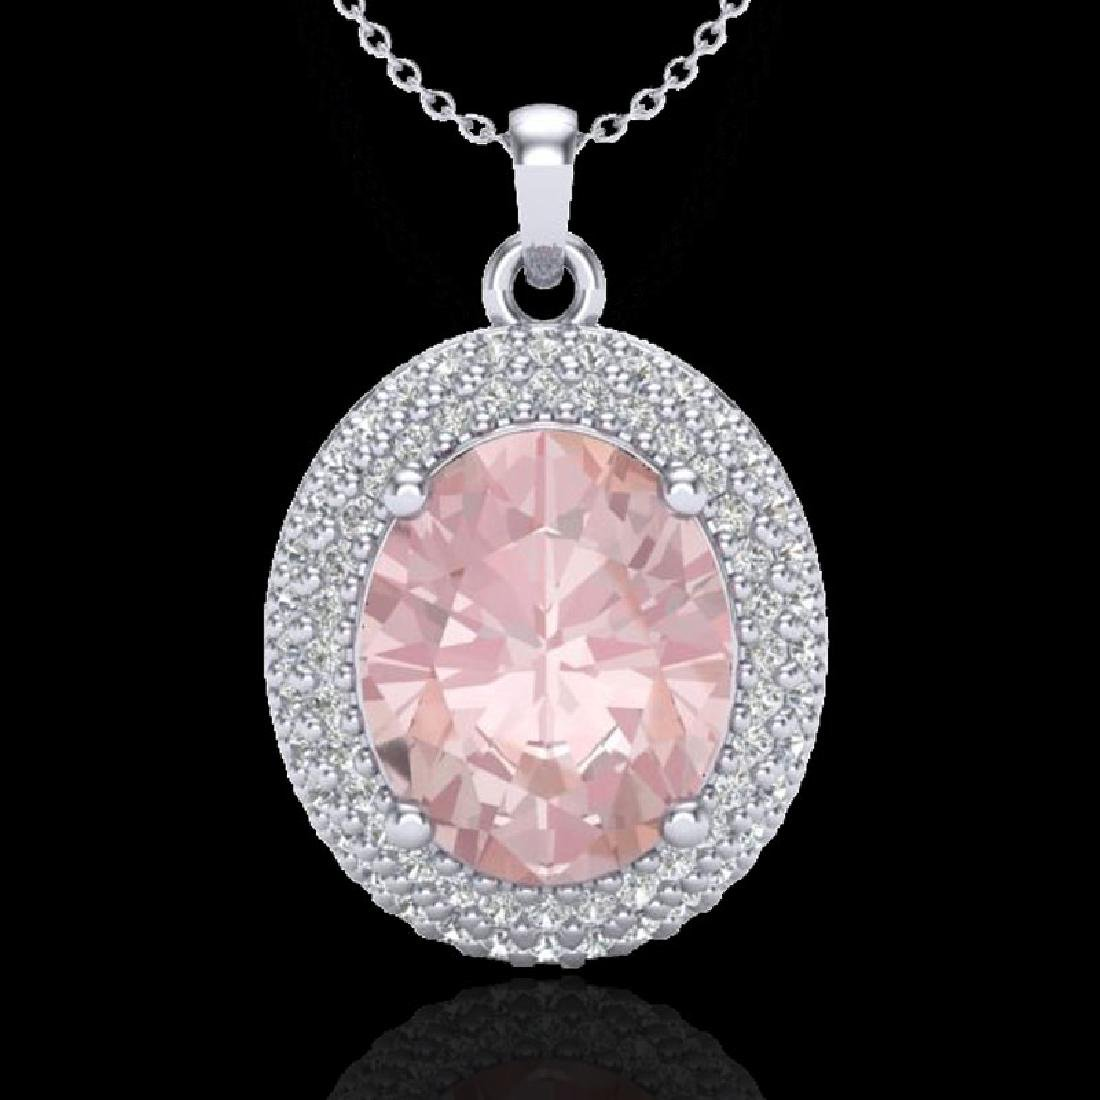 4.50 CTW Morganite & Micro Pave VS/SI Diamond Necklace